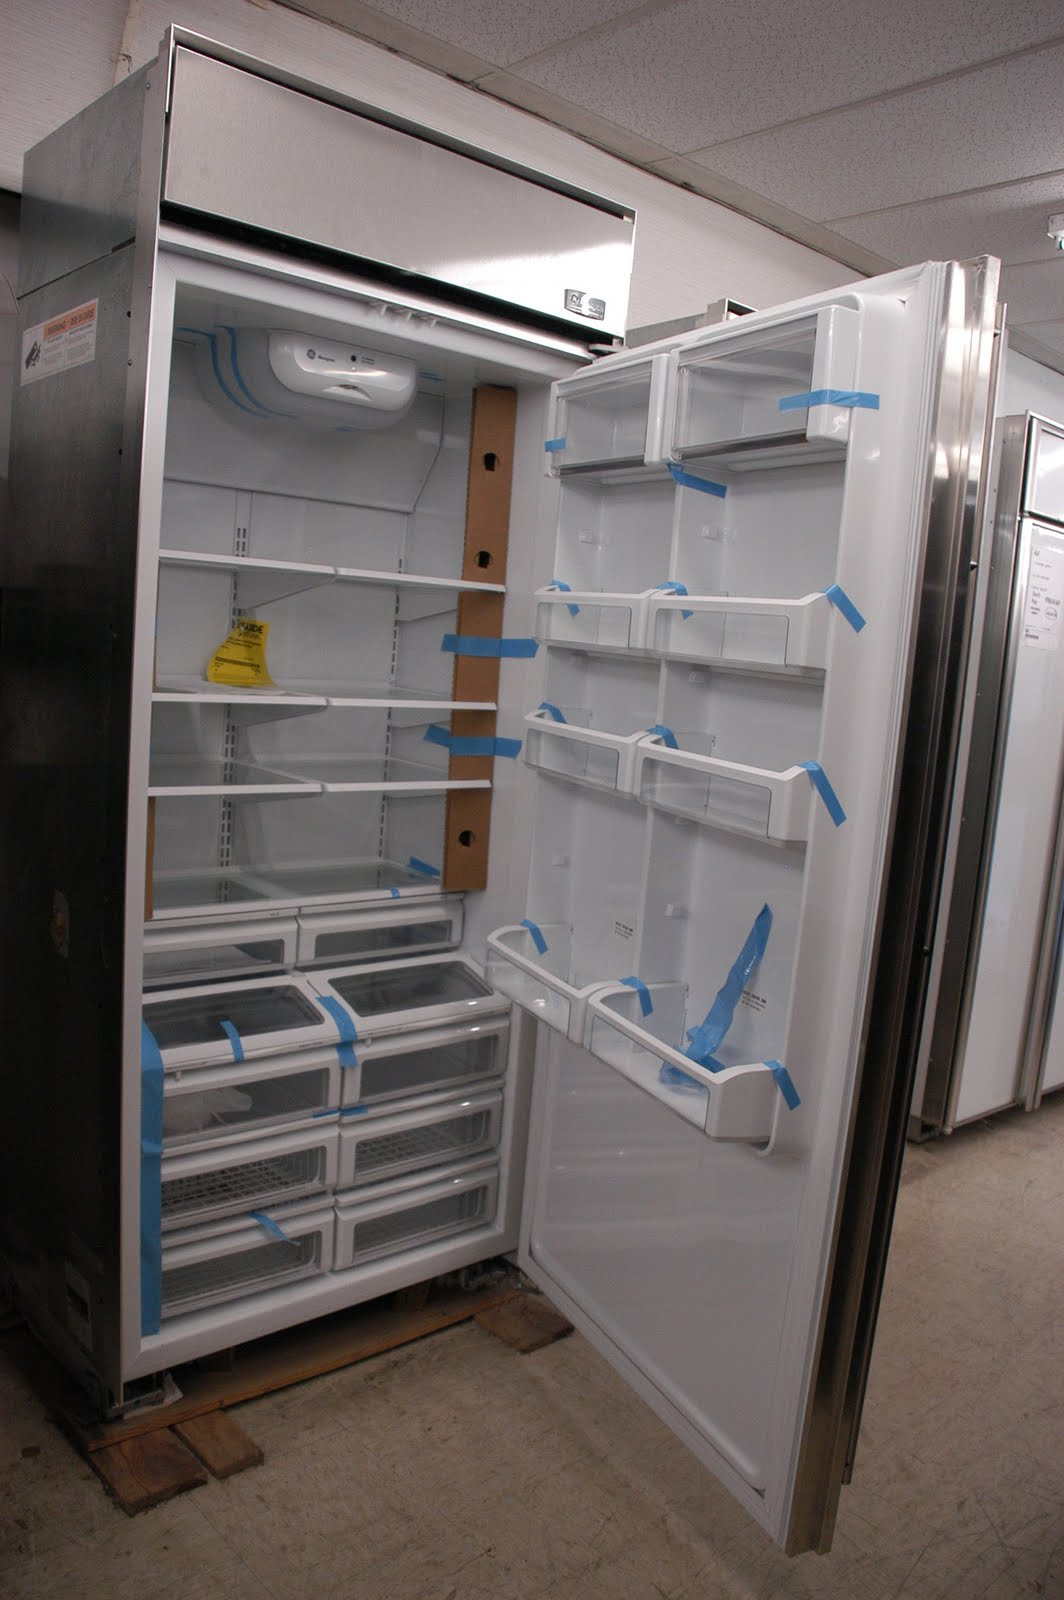 36 Refrigerators Refrigerators Parts Refrigerators Without Freezers